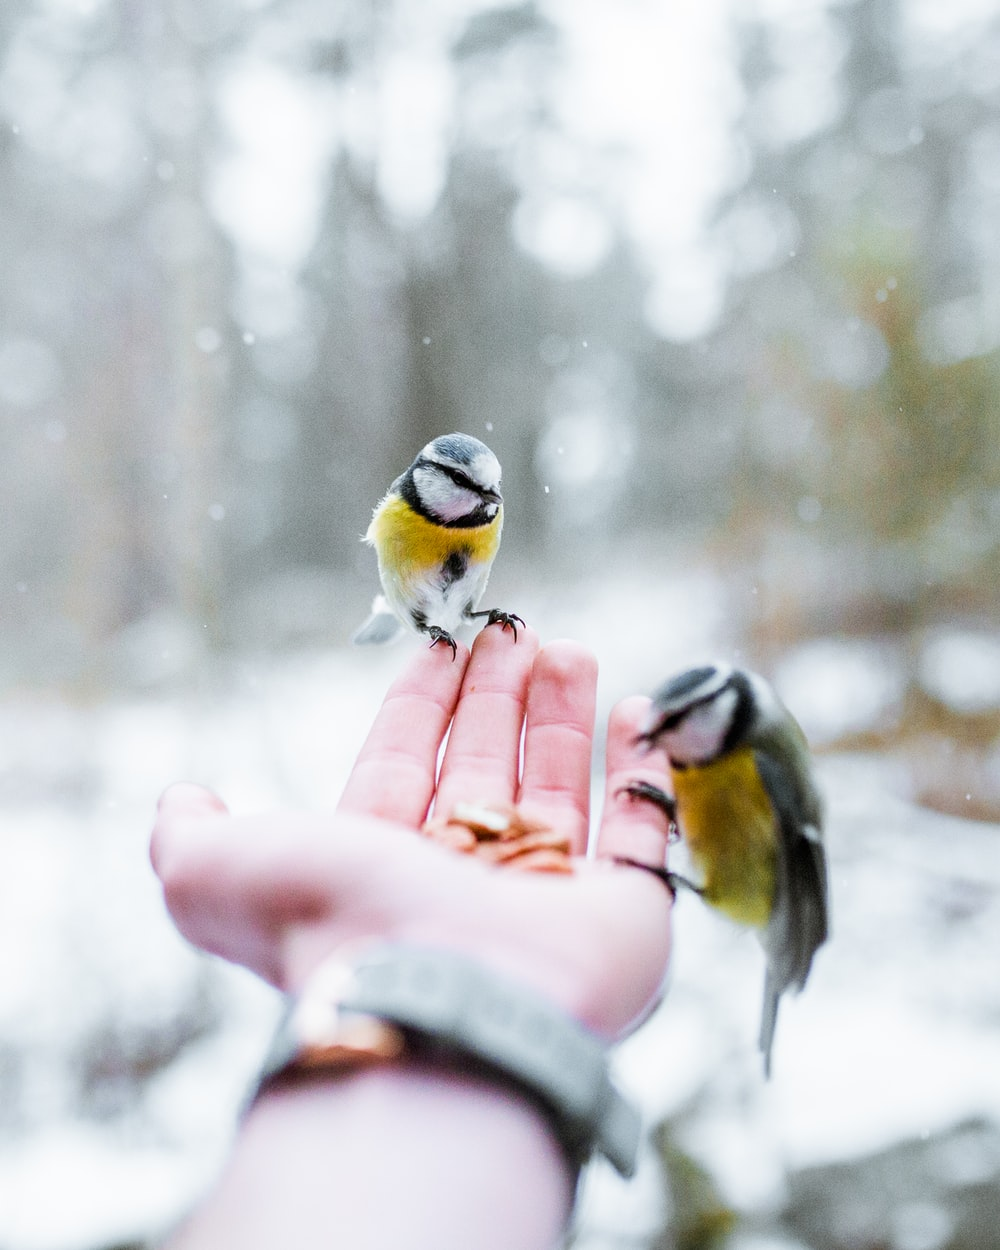 two yellow-and-black birds on person's palm